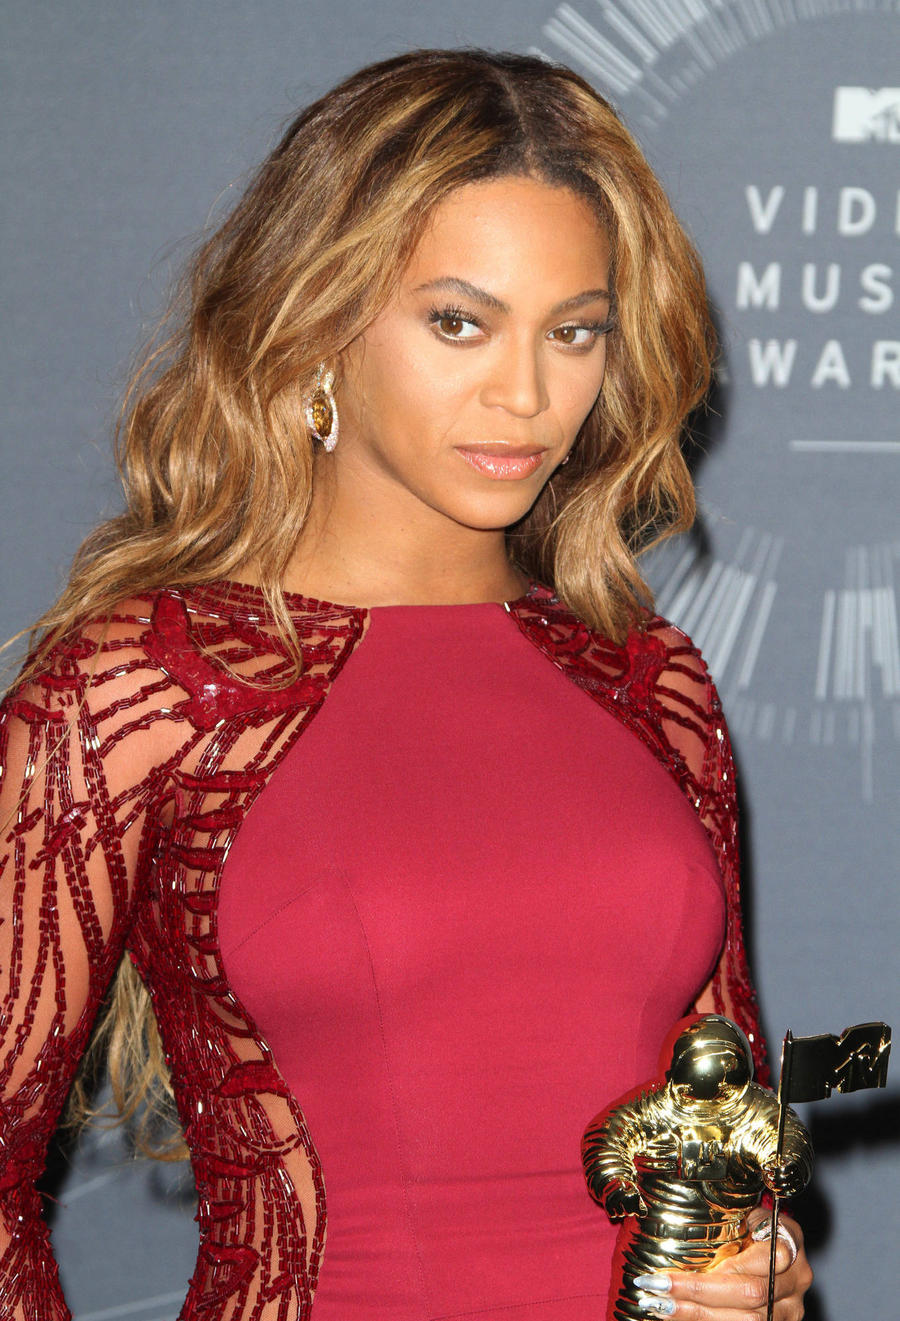 Beyonce Issues Call To Action After Latest Police Shootings